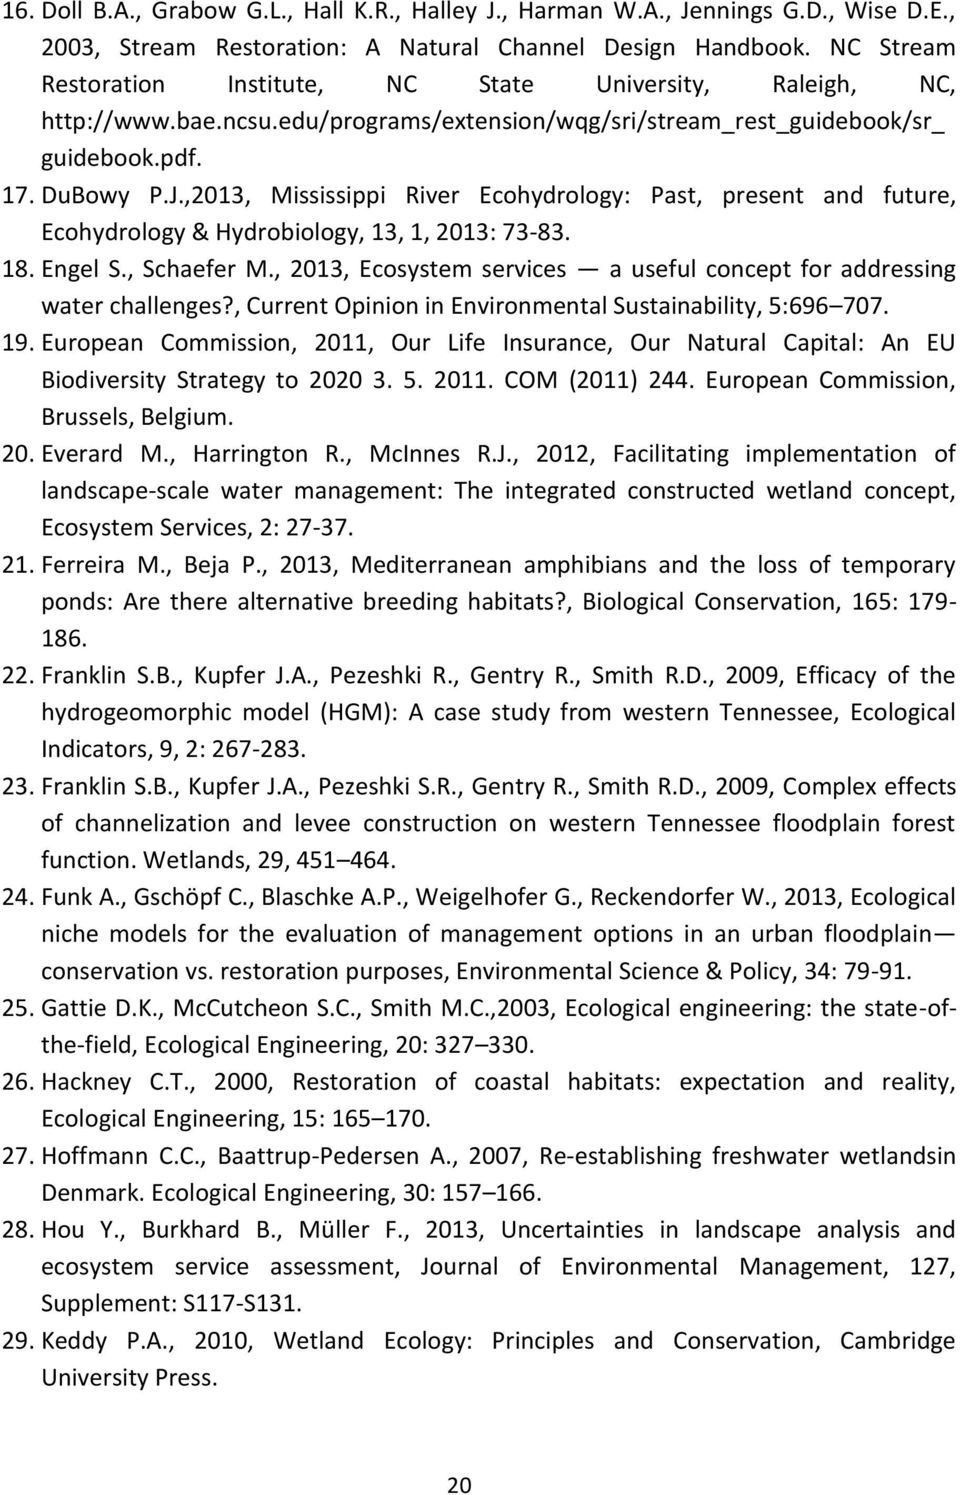 ,2013, Mississippi River Ecohydrology: Past, present and future, Ecohydrology & Hydrobiology, 13, 1, 2013: 73-83. 18. Engel S., Schaefer M.